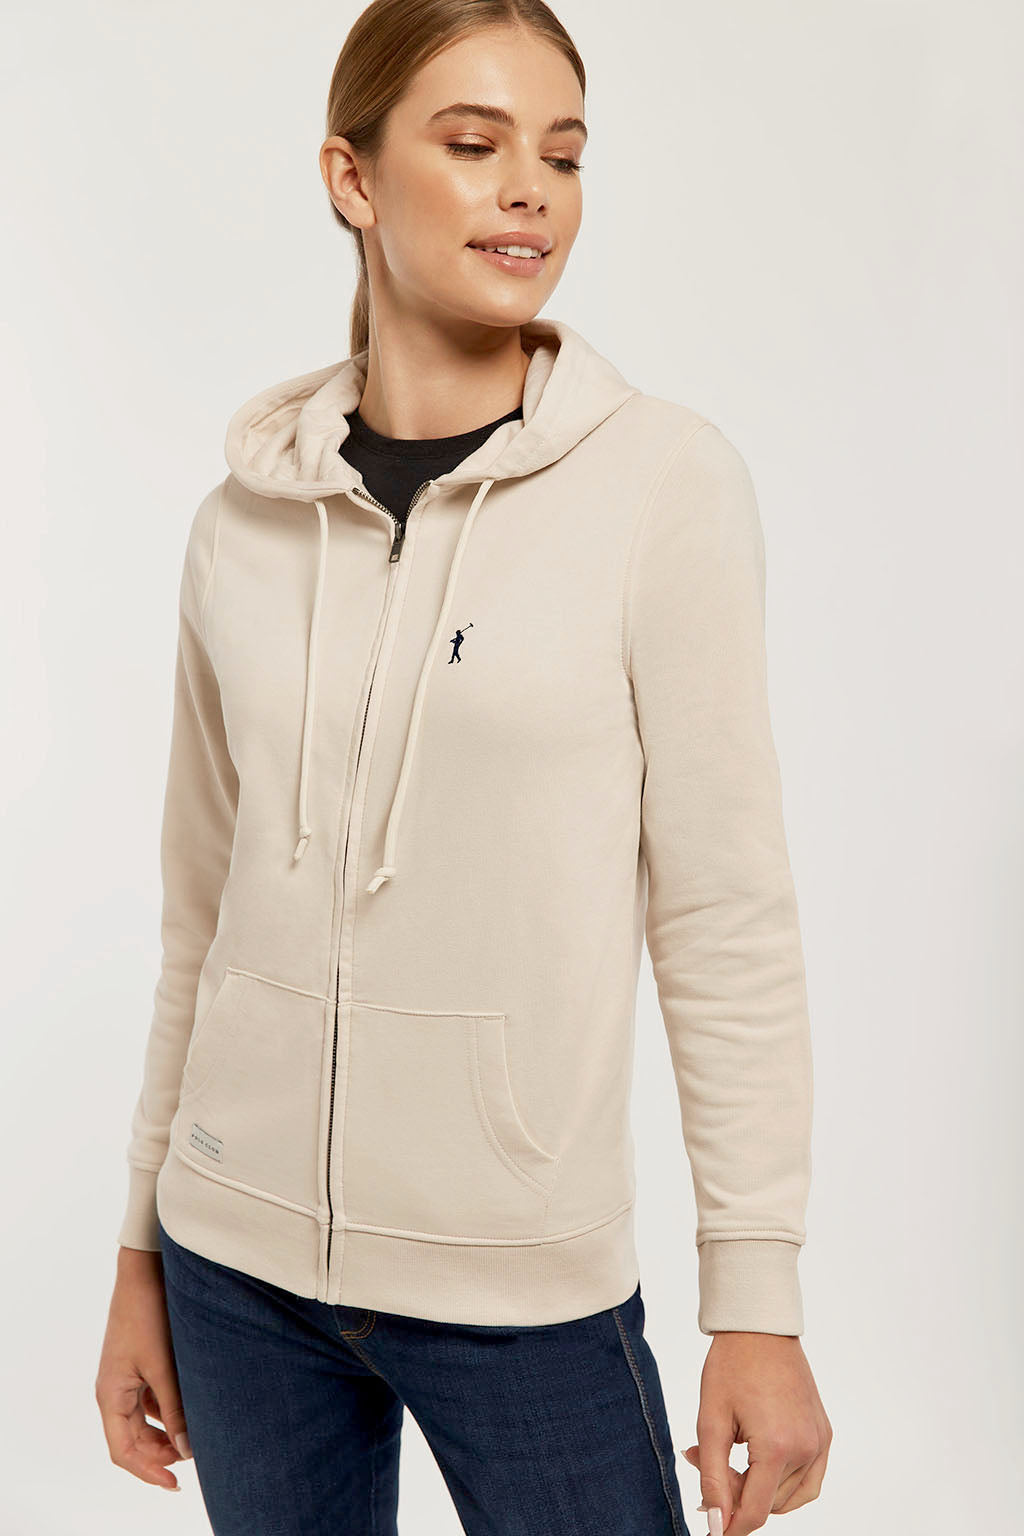 Beige zipped organic sweatshirt with embroidered logo